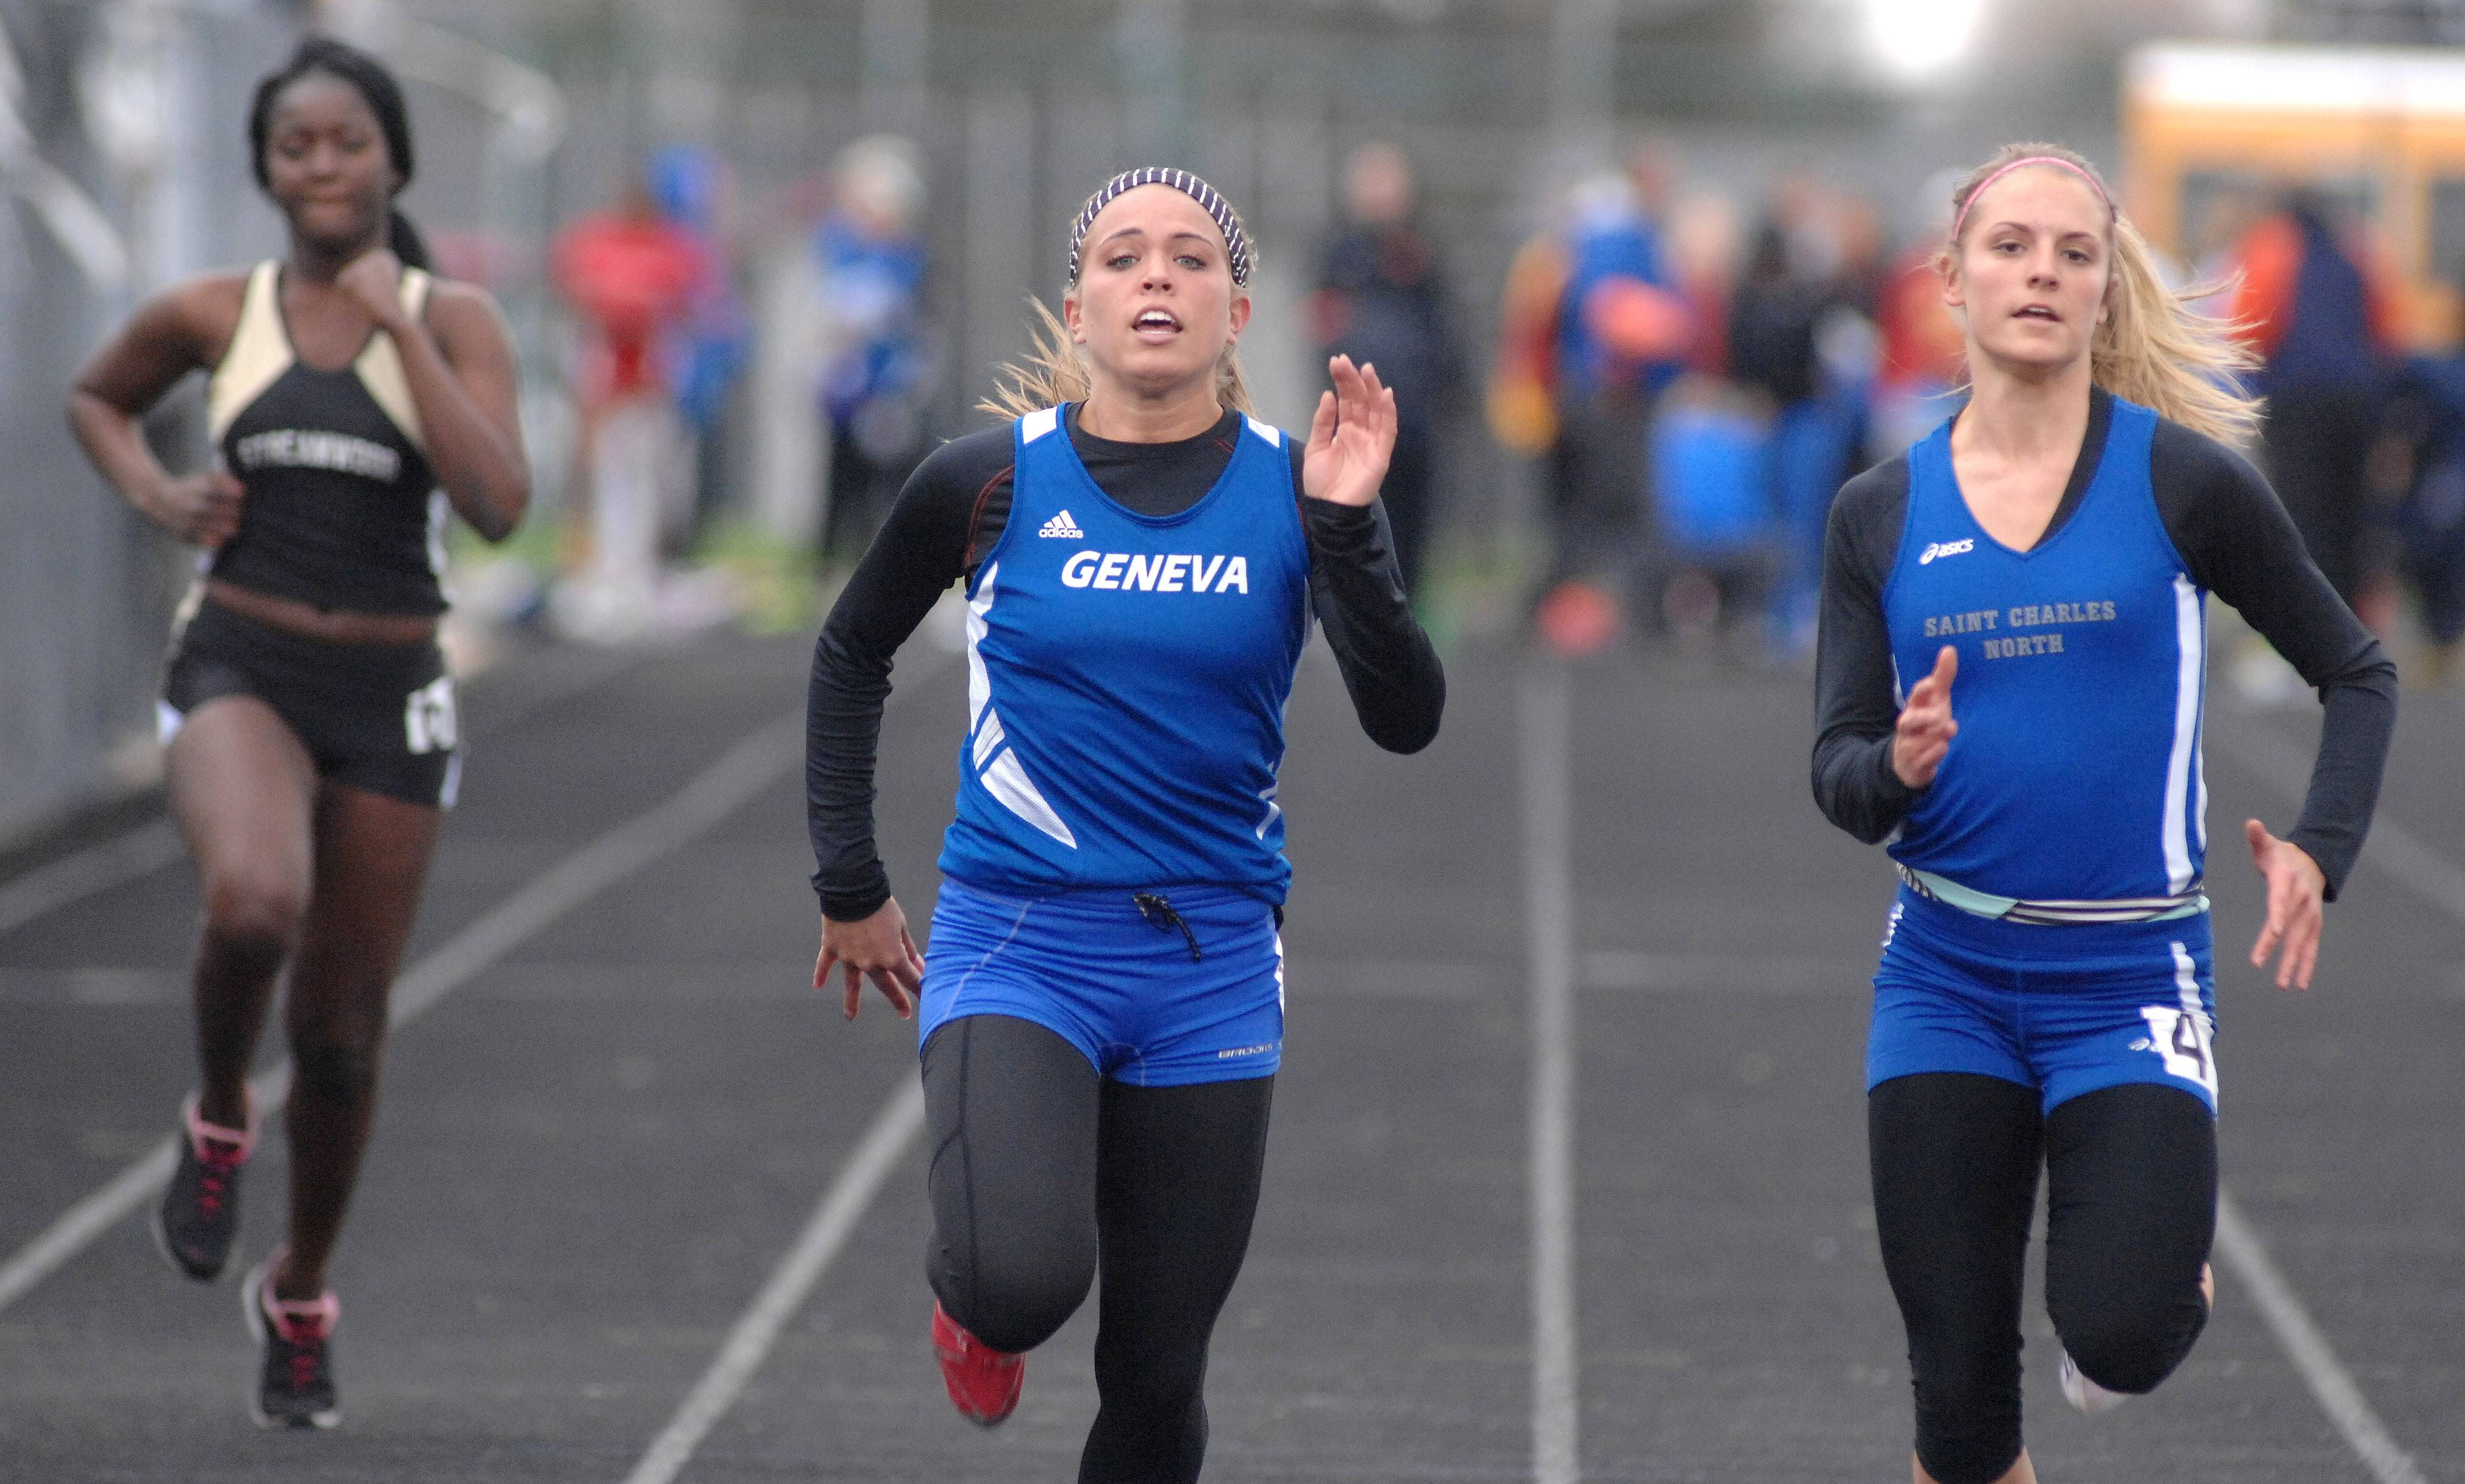 Geneva's Isabella Median, center, leads St. Charles North's Quinn Samanic, right, in the 100-yard prelims.